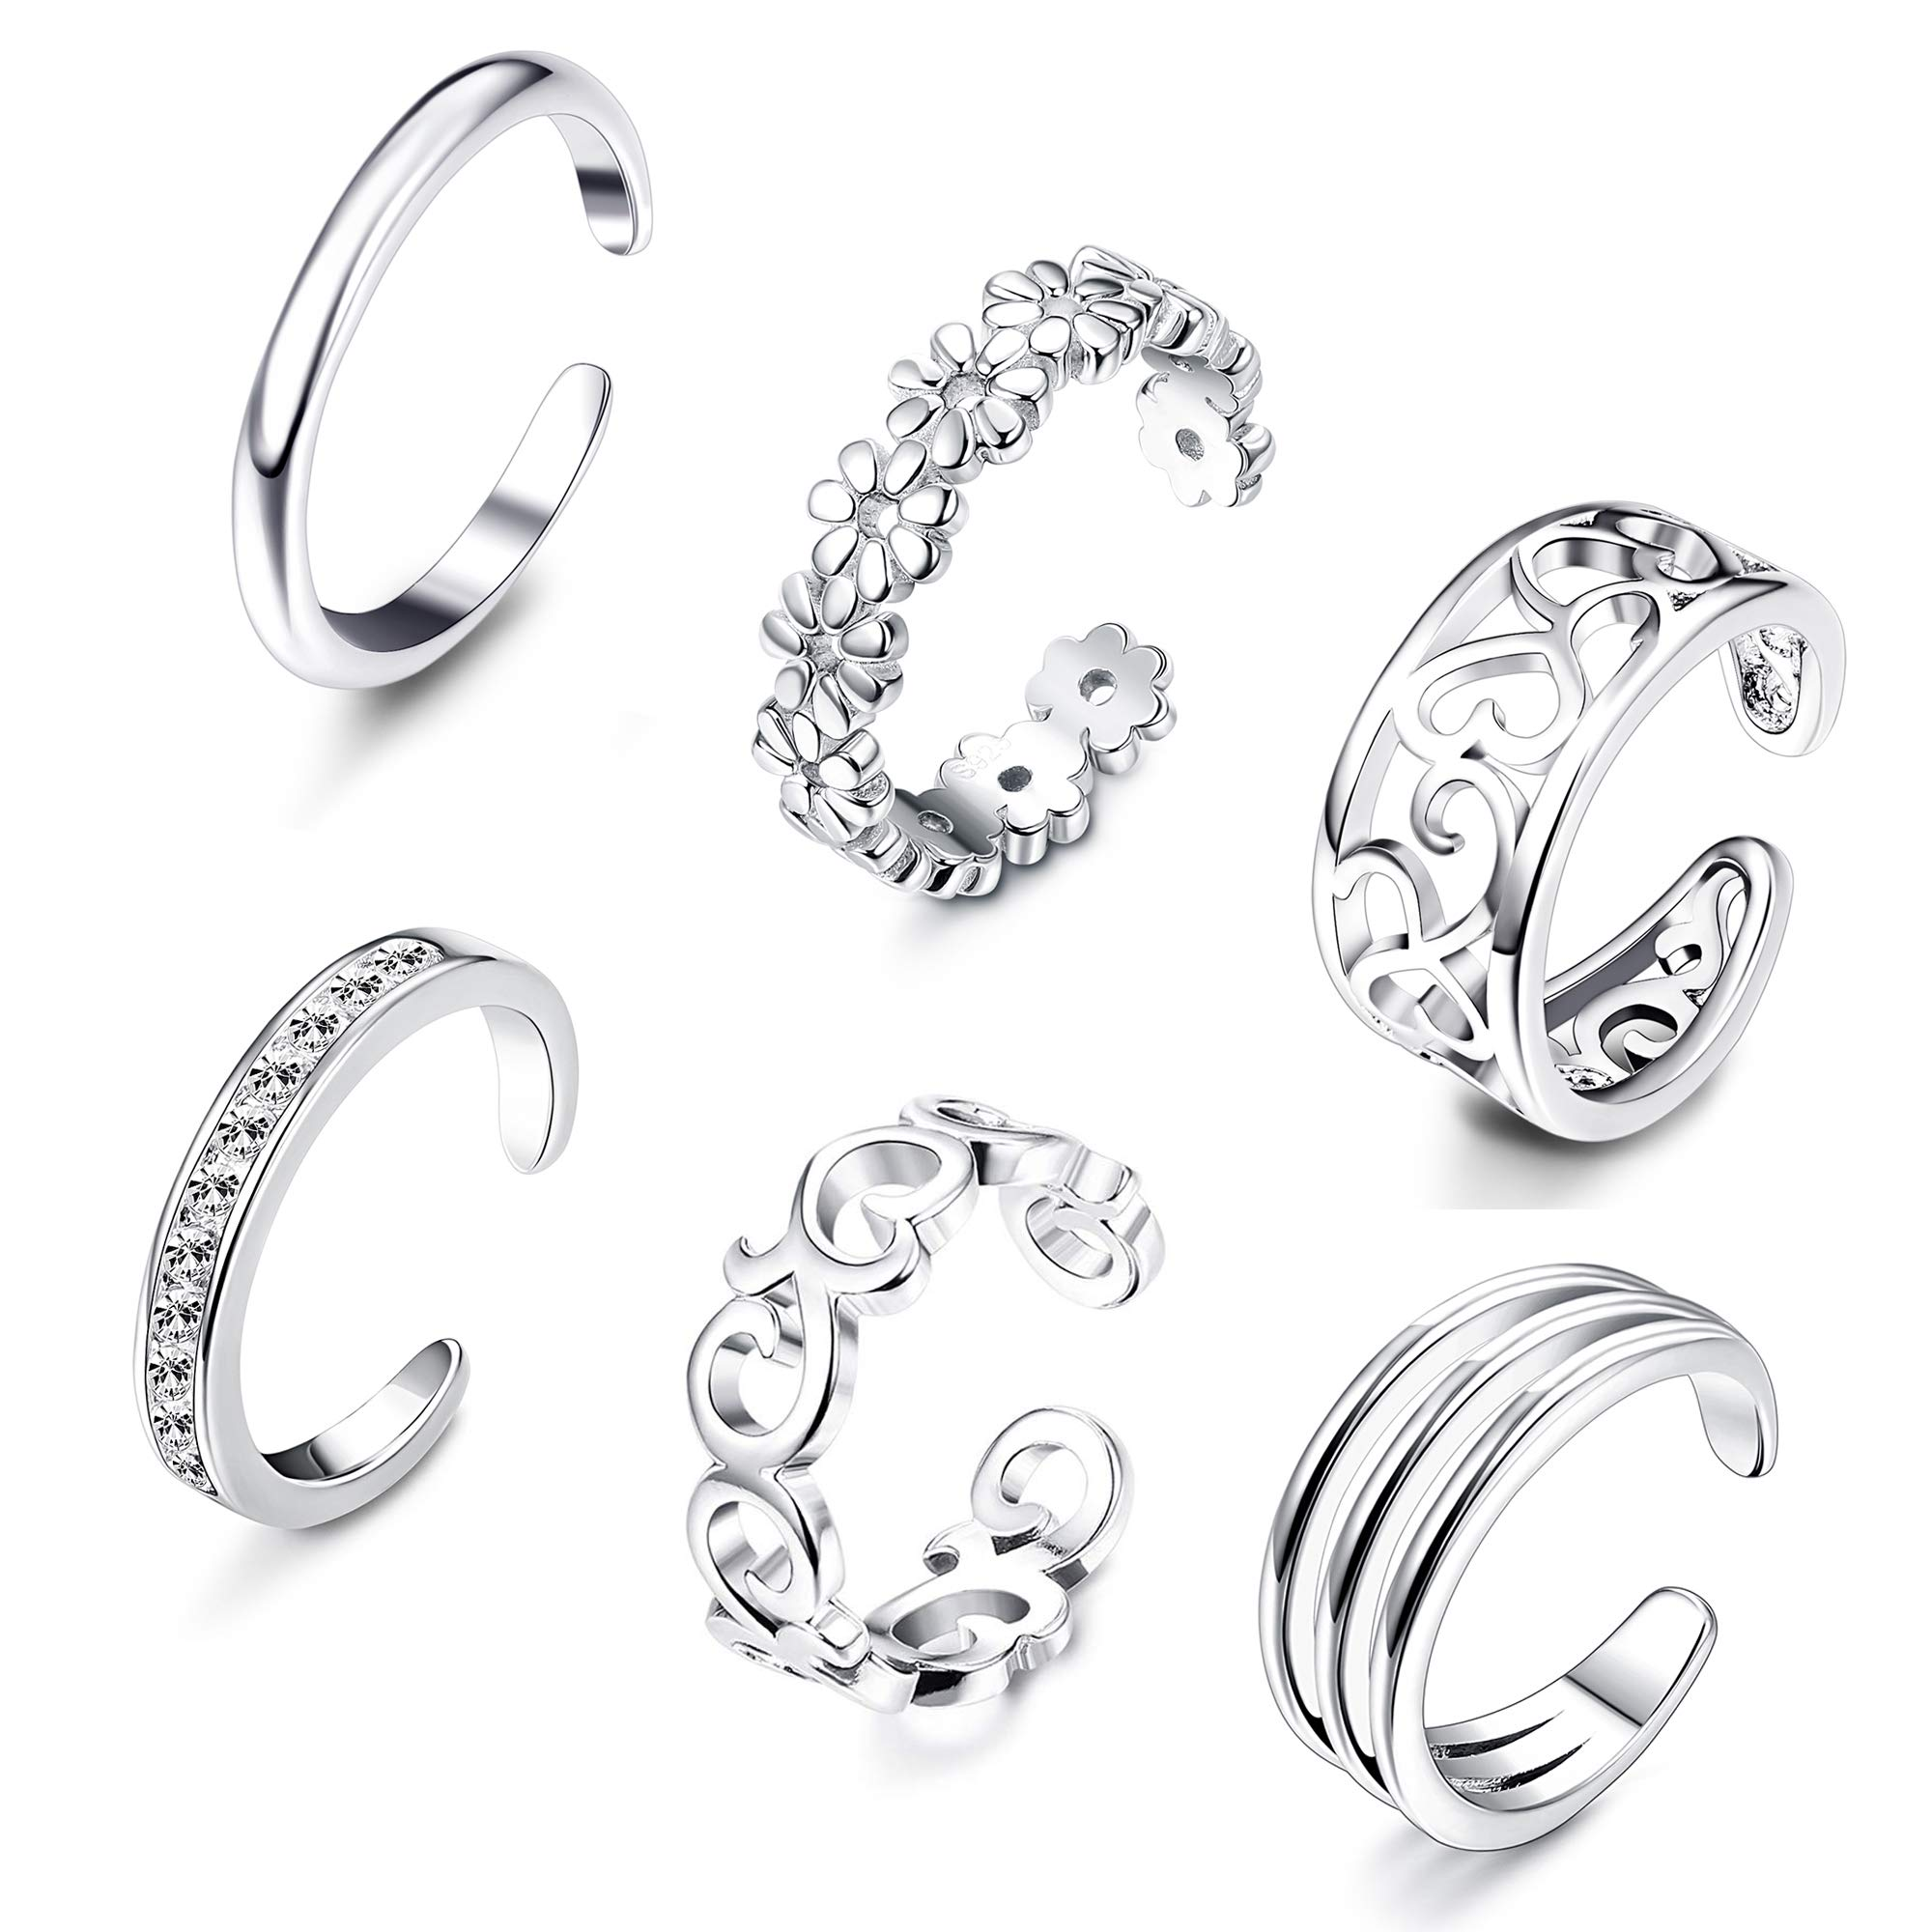 LOLIAS 6Pcs Open Toe Rings for Women Adjustable Toe Band Ring Set Gifts Summer Beach Foot Jewelry